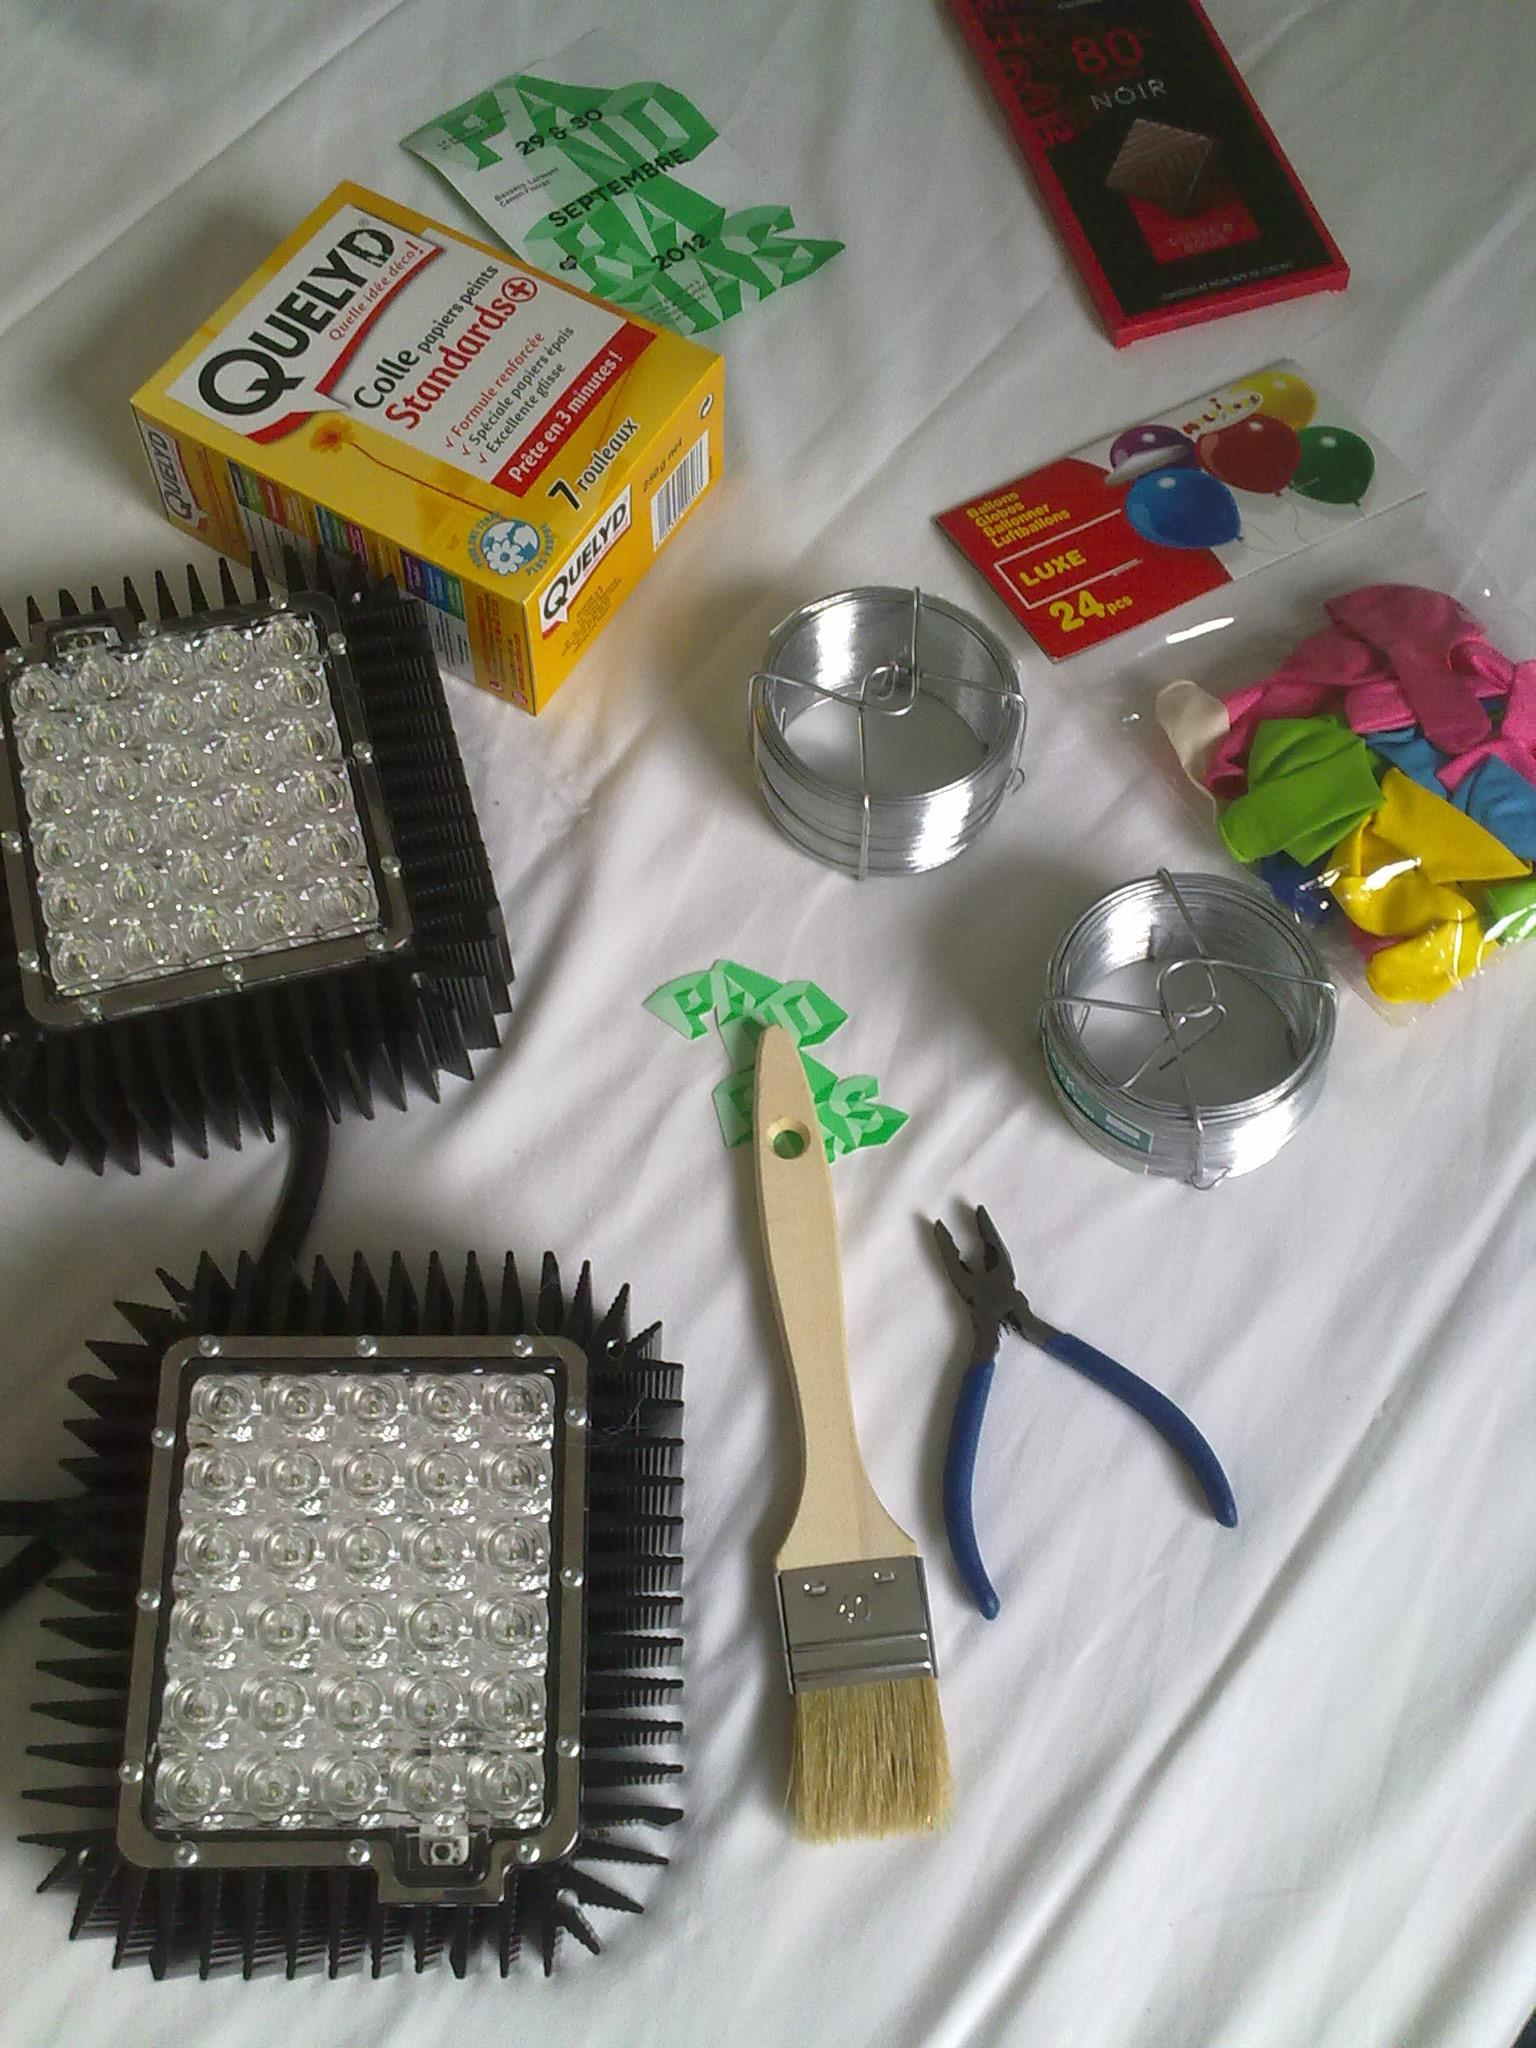 The tools needed to construct lanterns for the big LED modules.